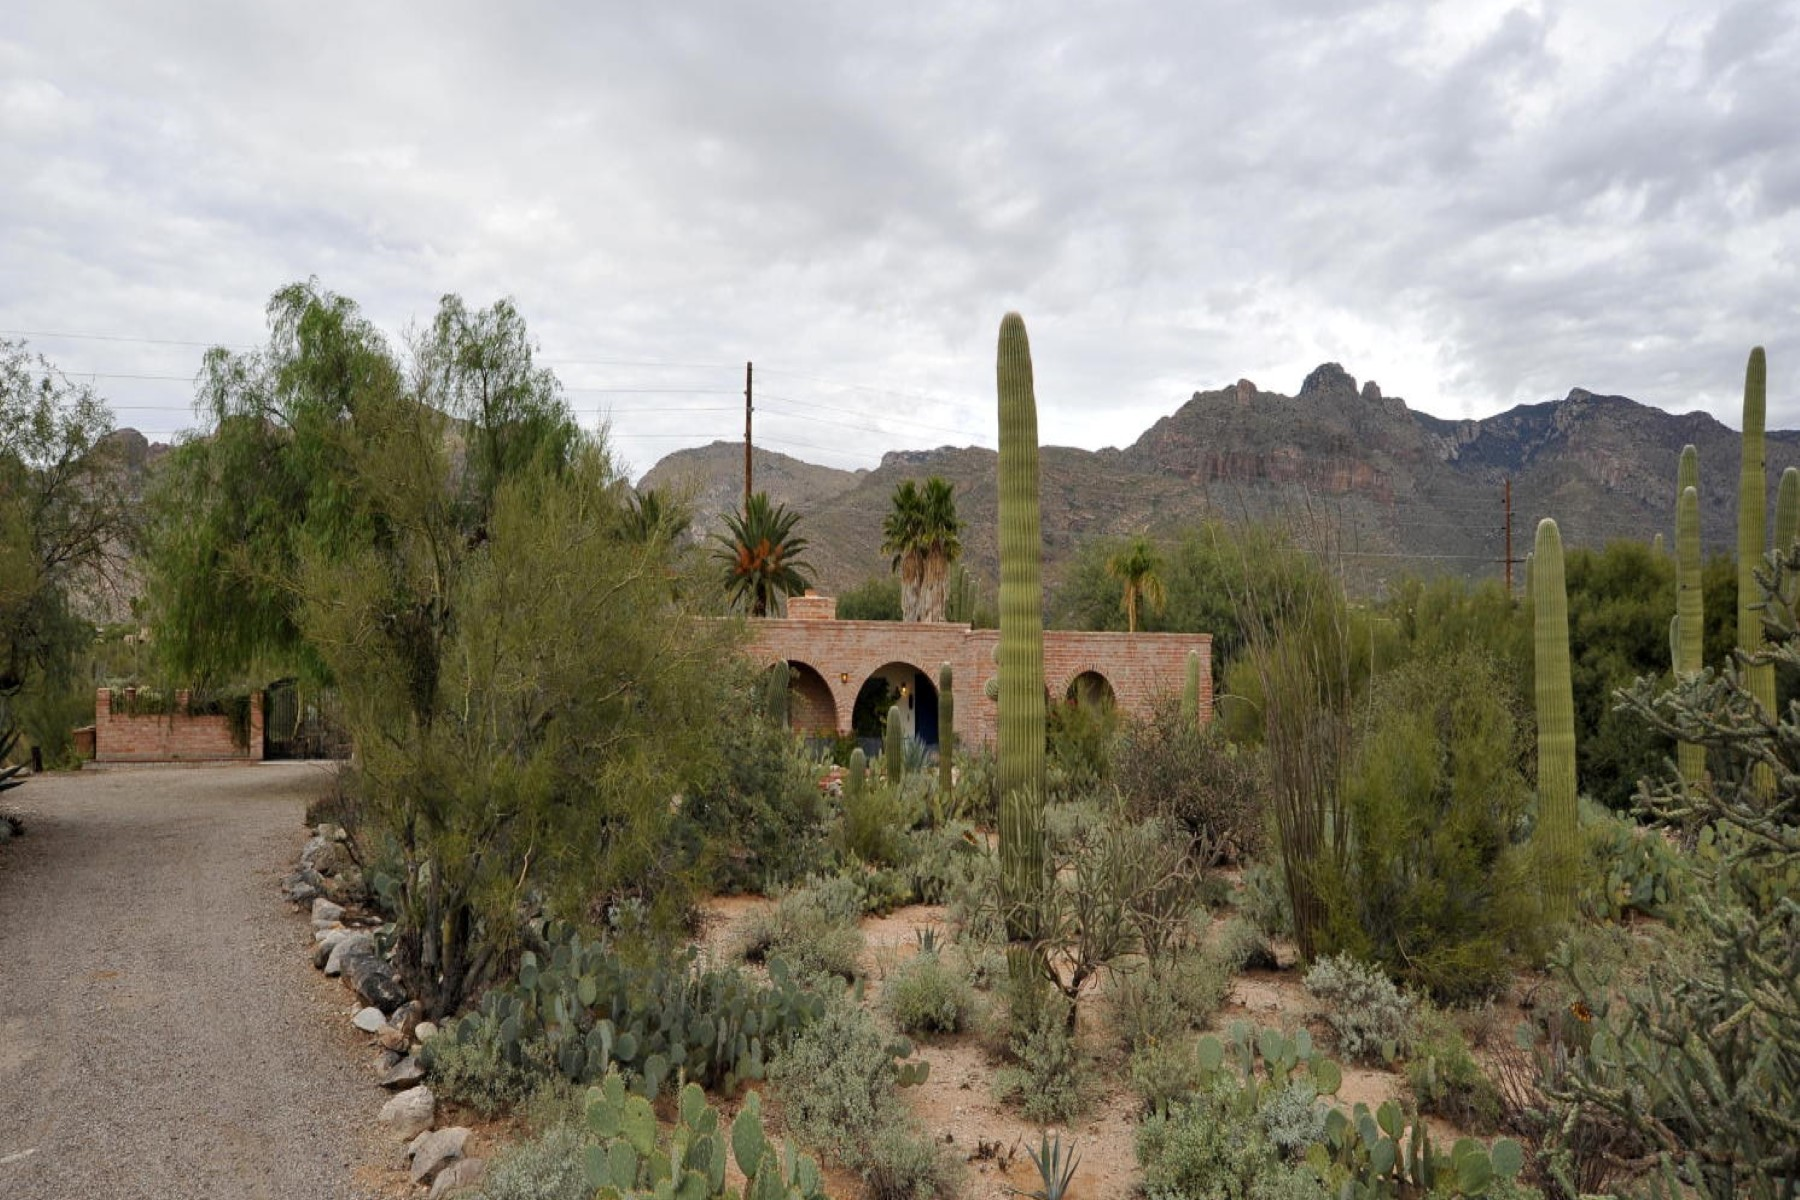 Single Family Home for Sale at Stunning views of the Catalina mountains 6961 N Solaz Primero Tucson, Arizona 85718 United States